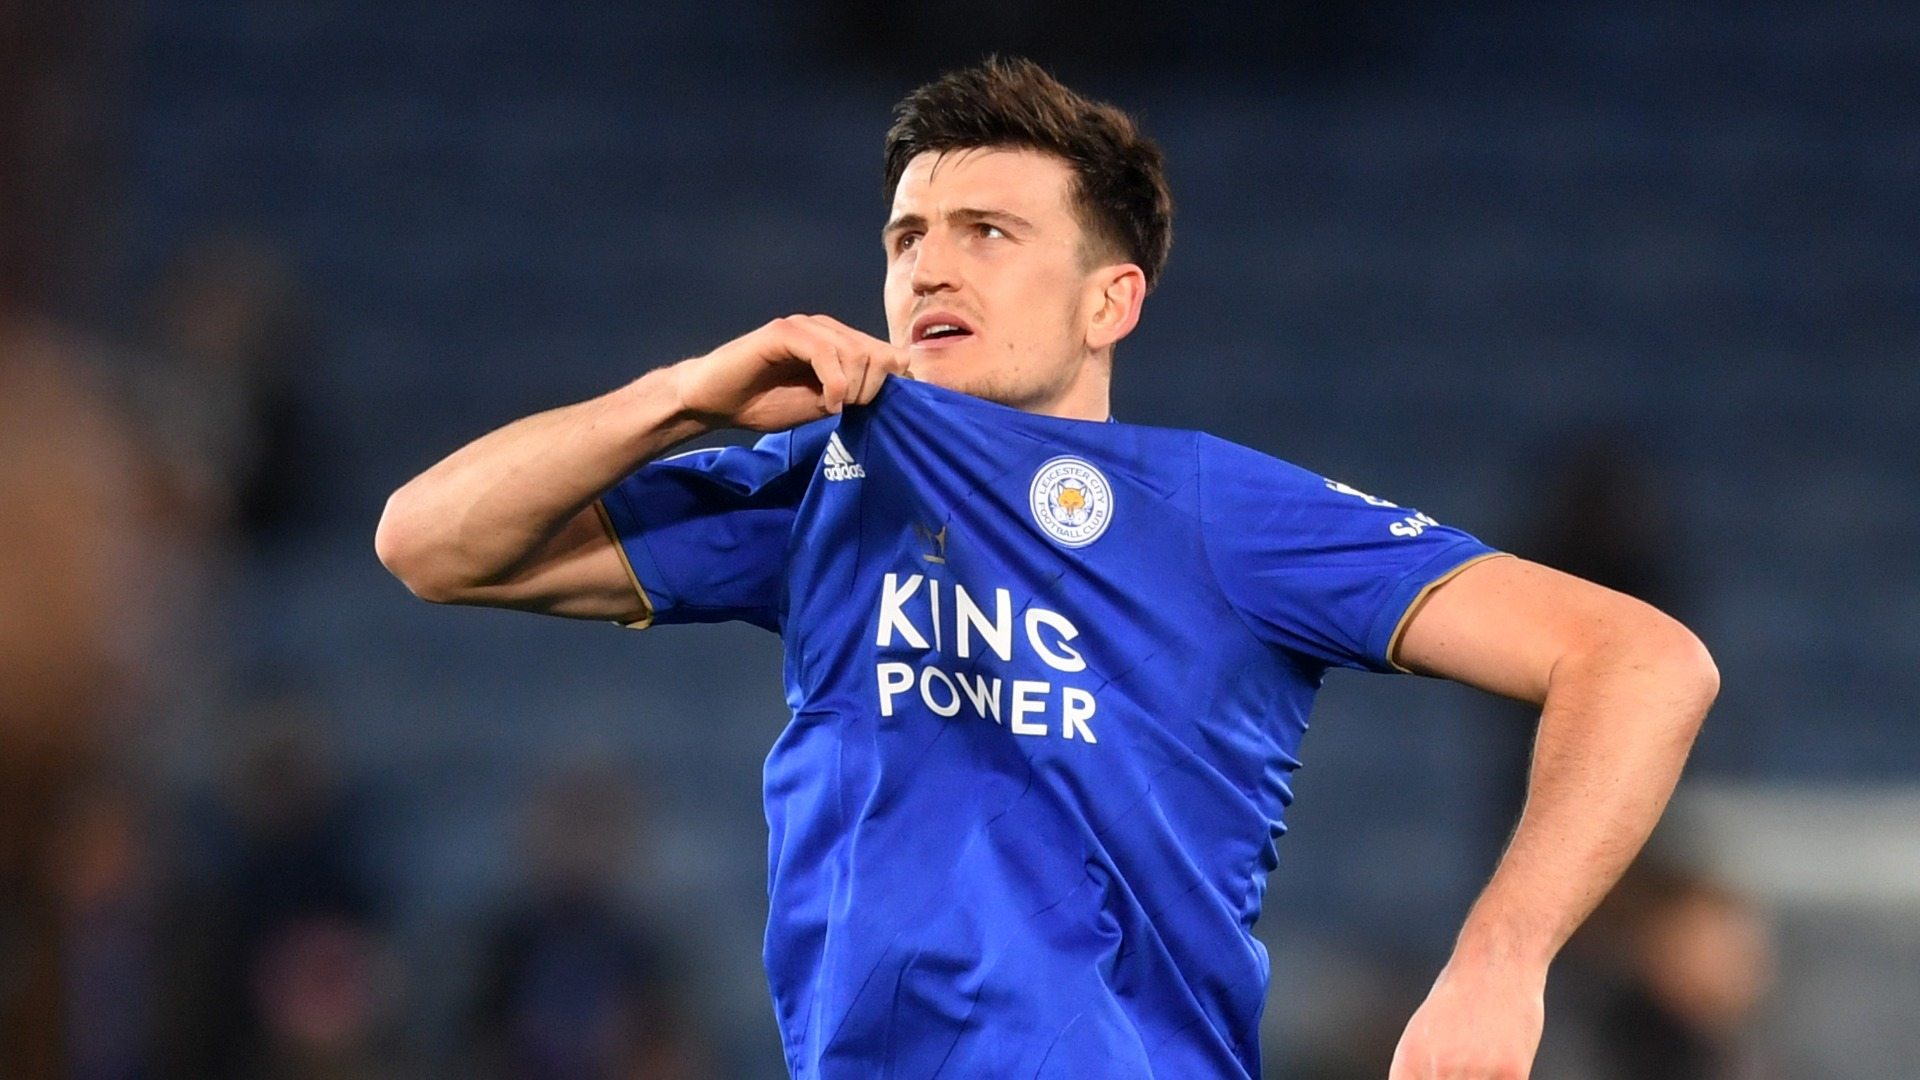 We've all been there! - Maguire explains Manchester United social media faux pas